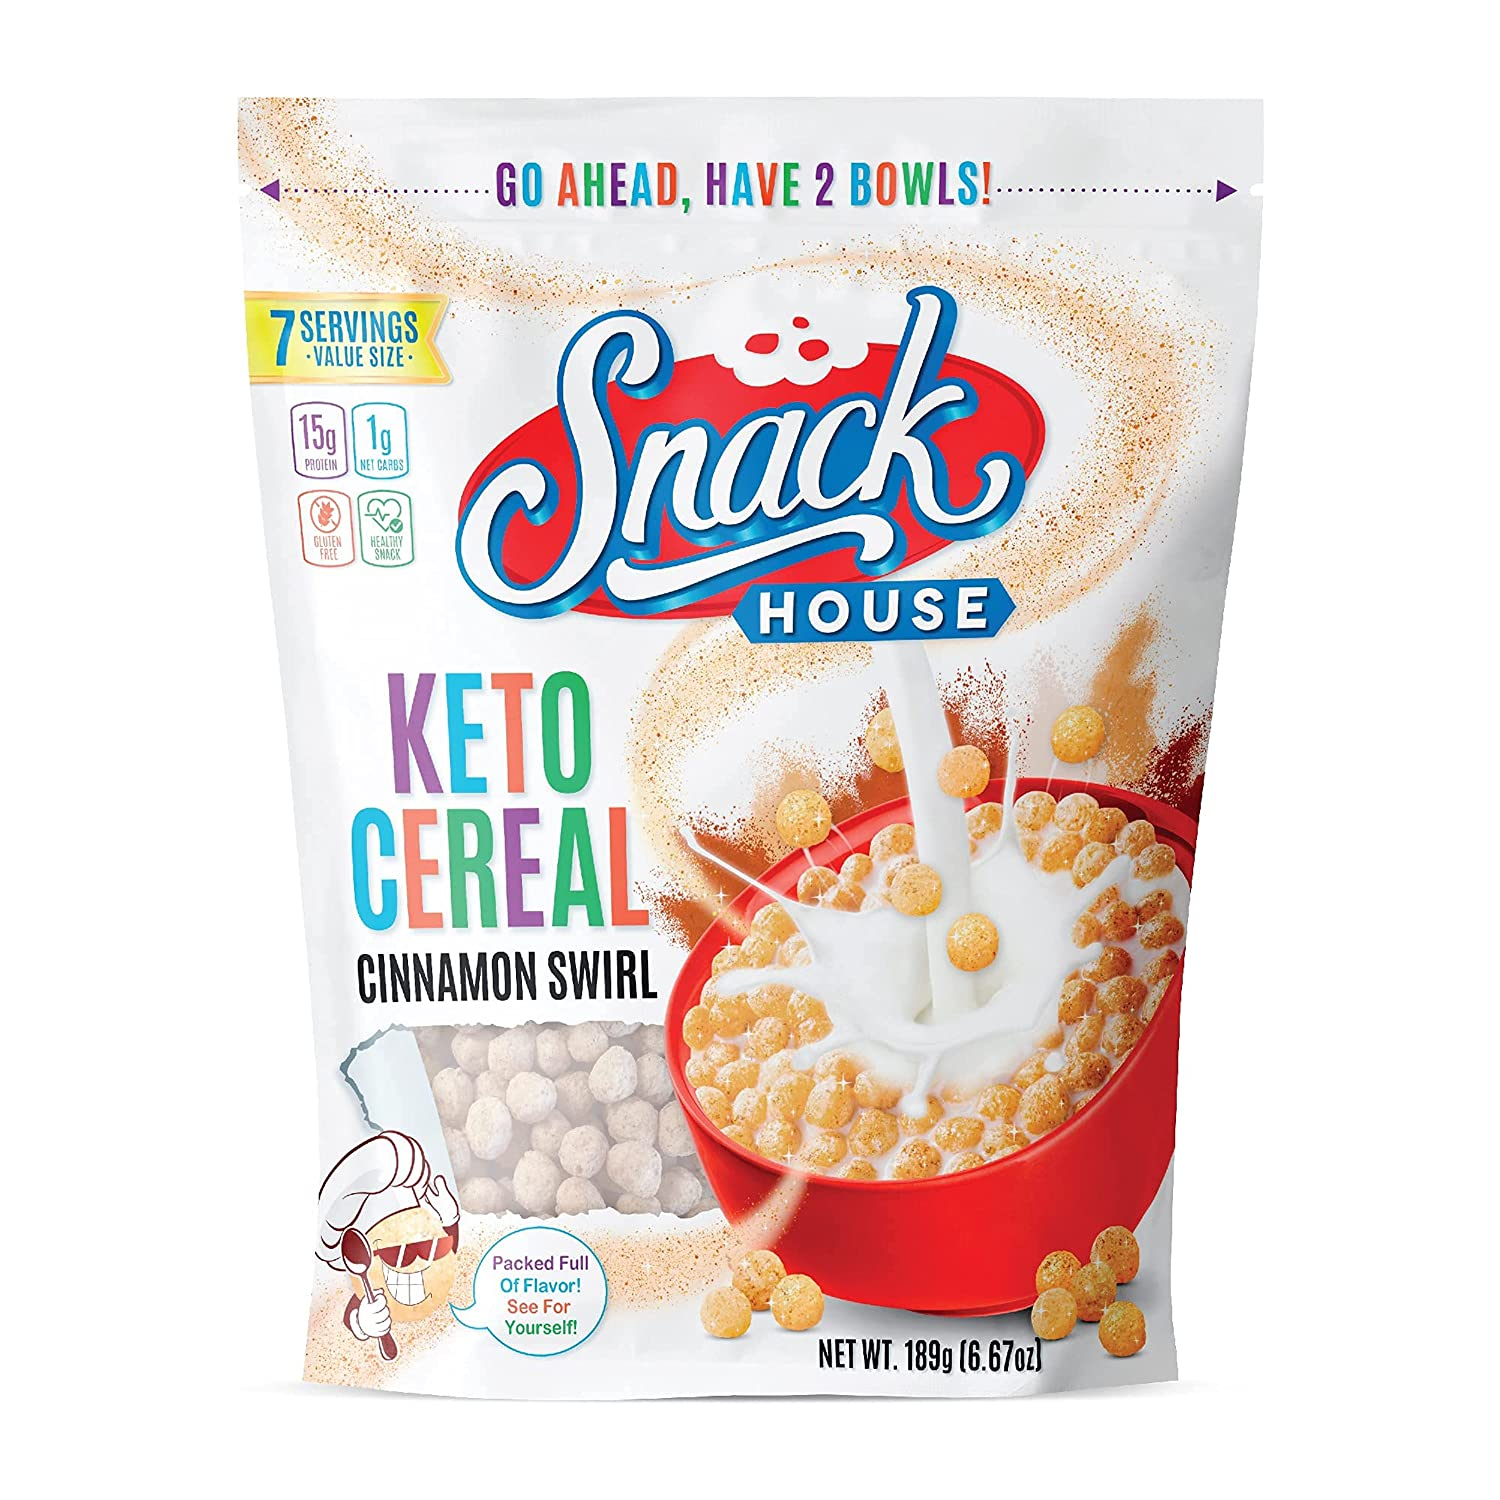 Keto Cereal by Snacks House, High Protein Low Carb Healthy Breakfast Food for Kids & Adults – Zero Added Sugar – Paleo, Diabetic, Ketogenic Diet Friendly Toast Cereals – 7 Serving Cinnamon Crunch